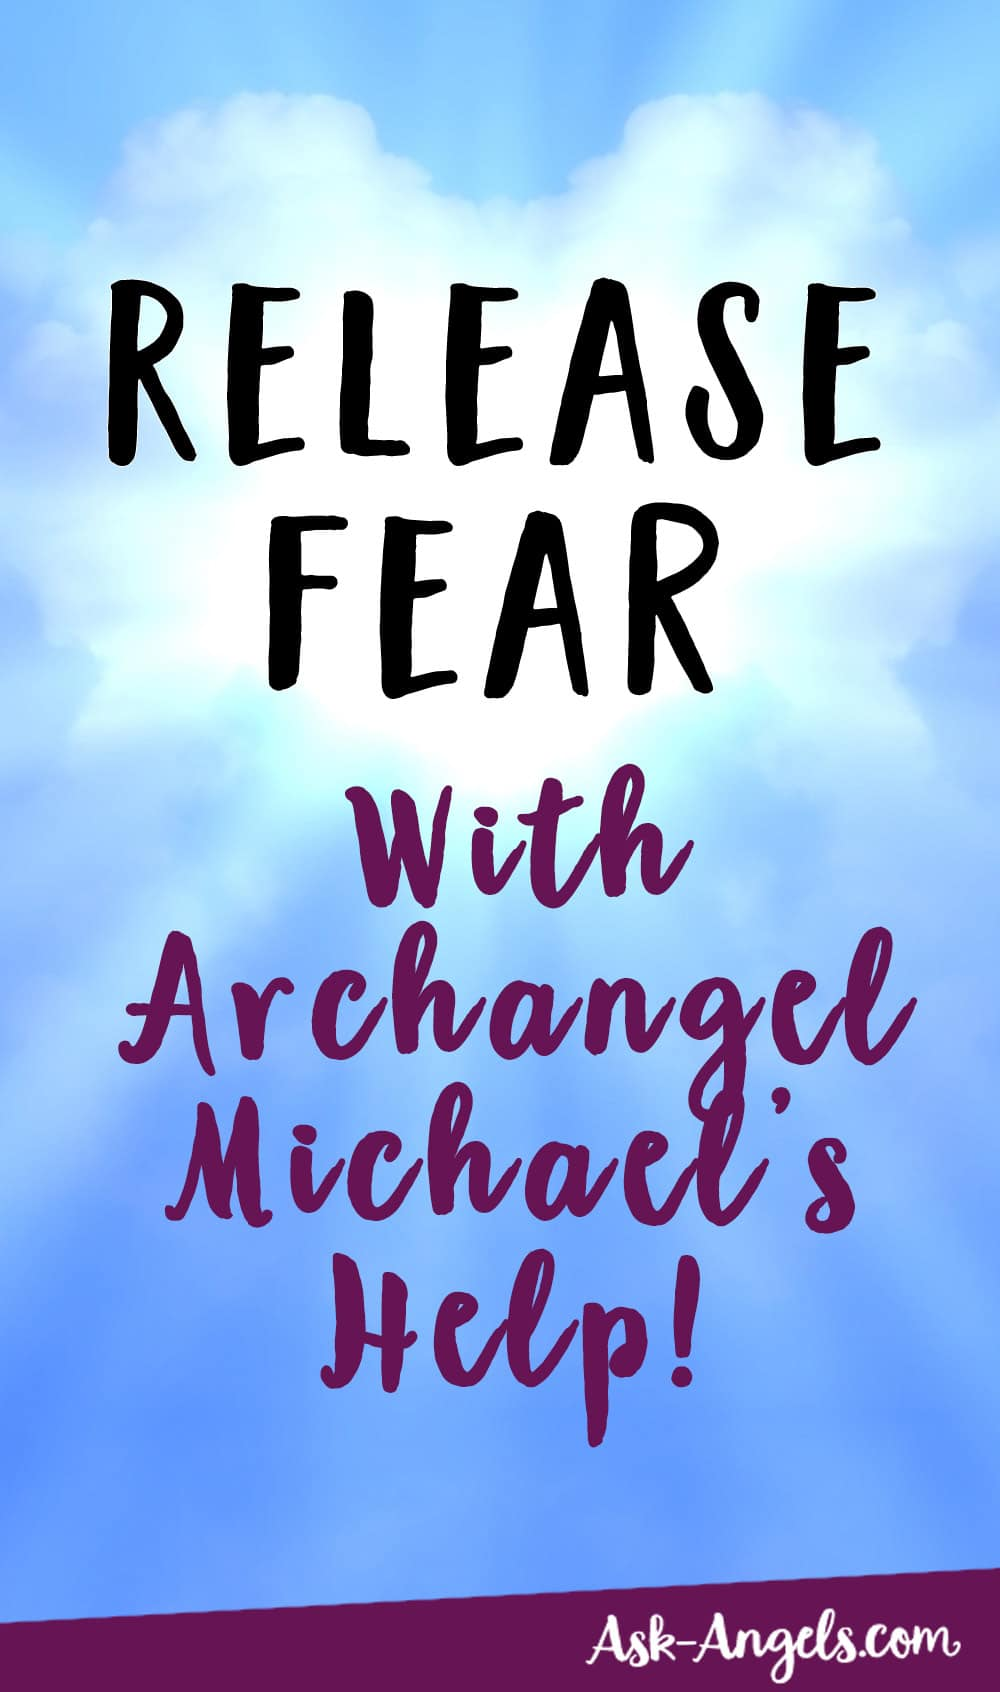 Release Fear with Archangel Michael's Help